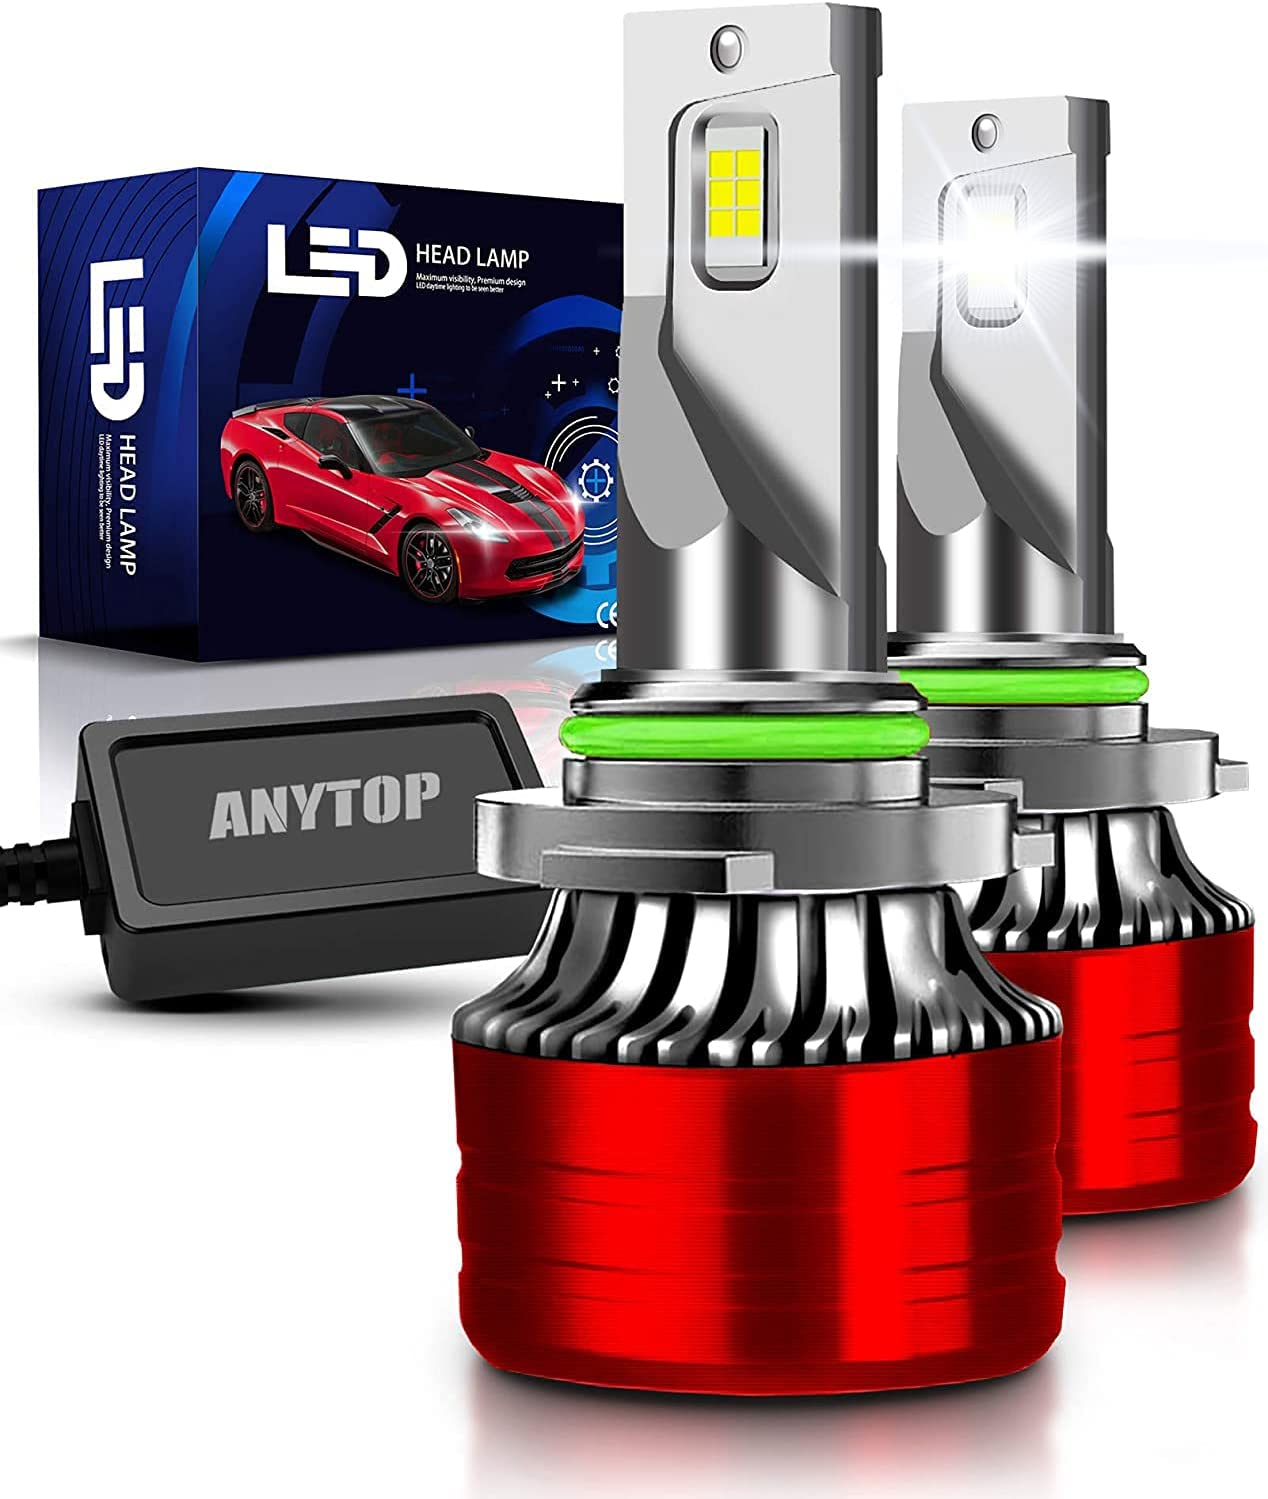 Sale ANYTOP 9006 HB4 LED Headlight Bulbs Low Lights Fog Today's only Replace Beam